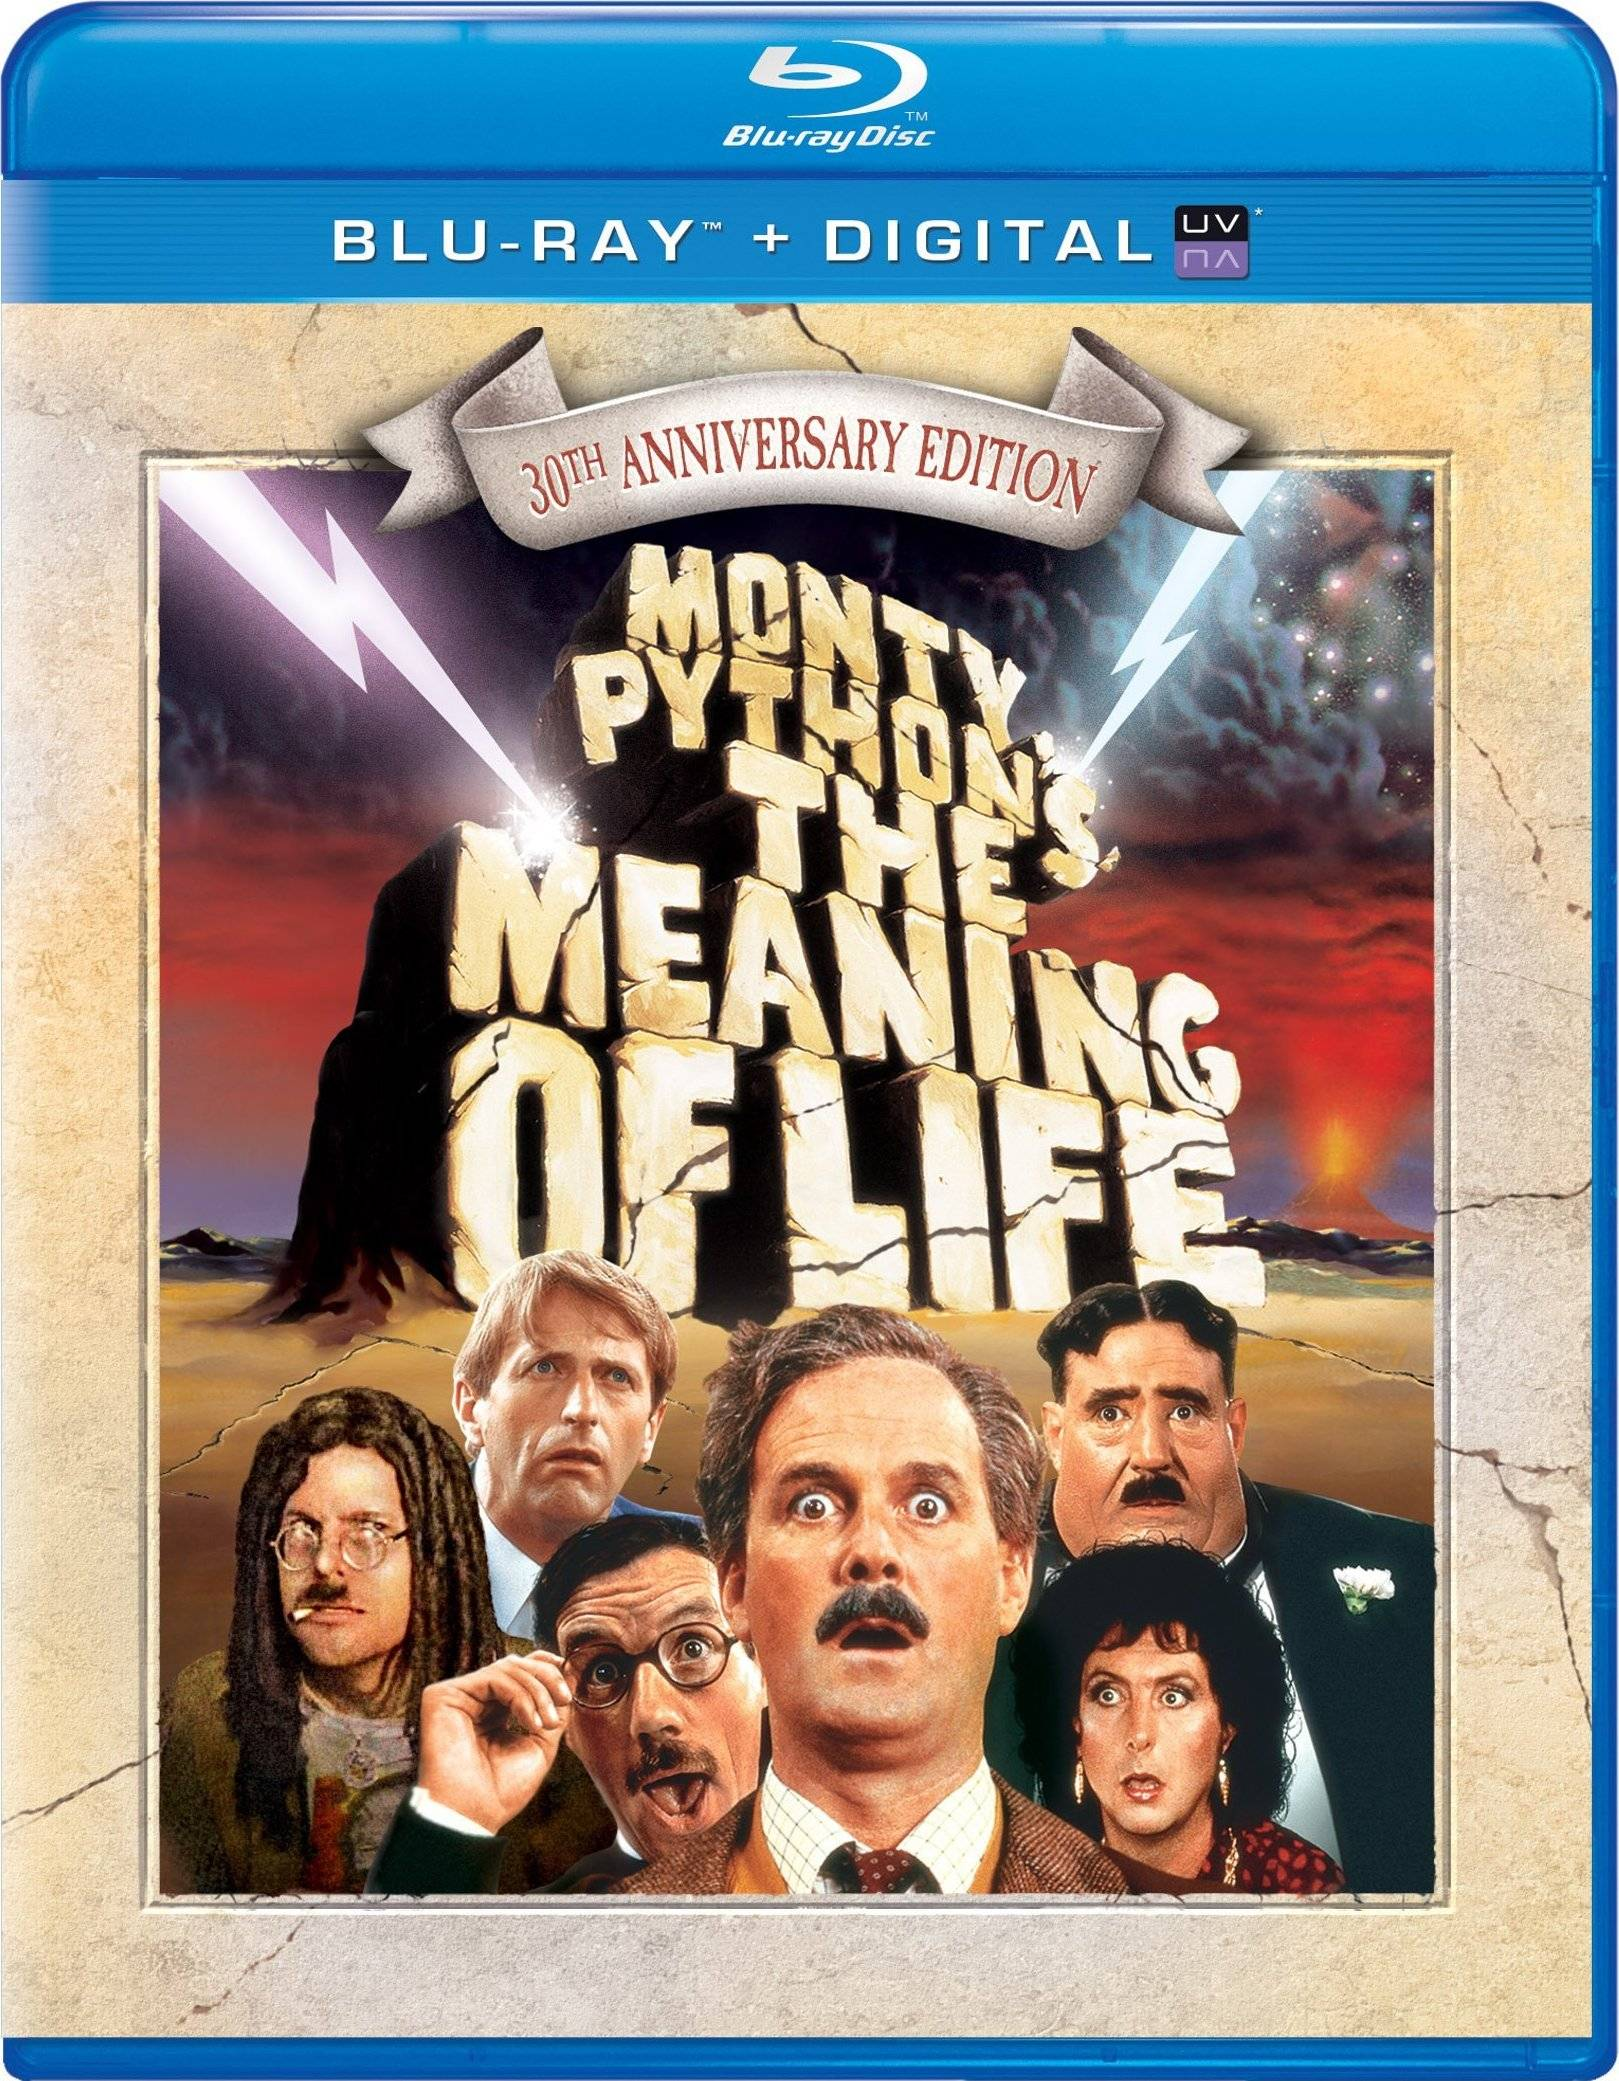 Monty Python's: The Meaning Of Life (1983)